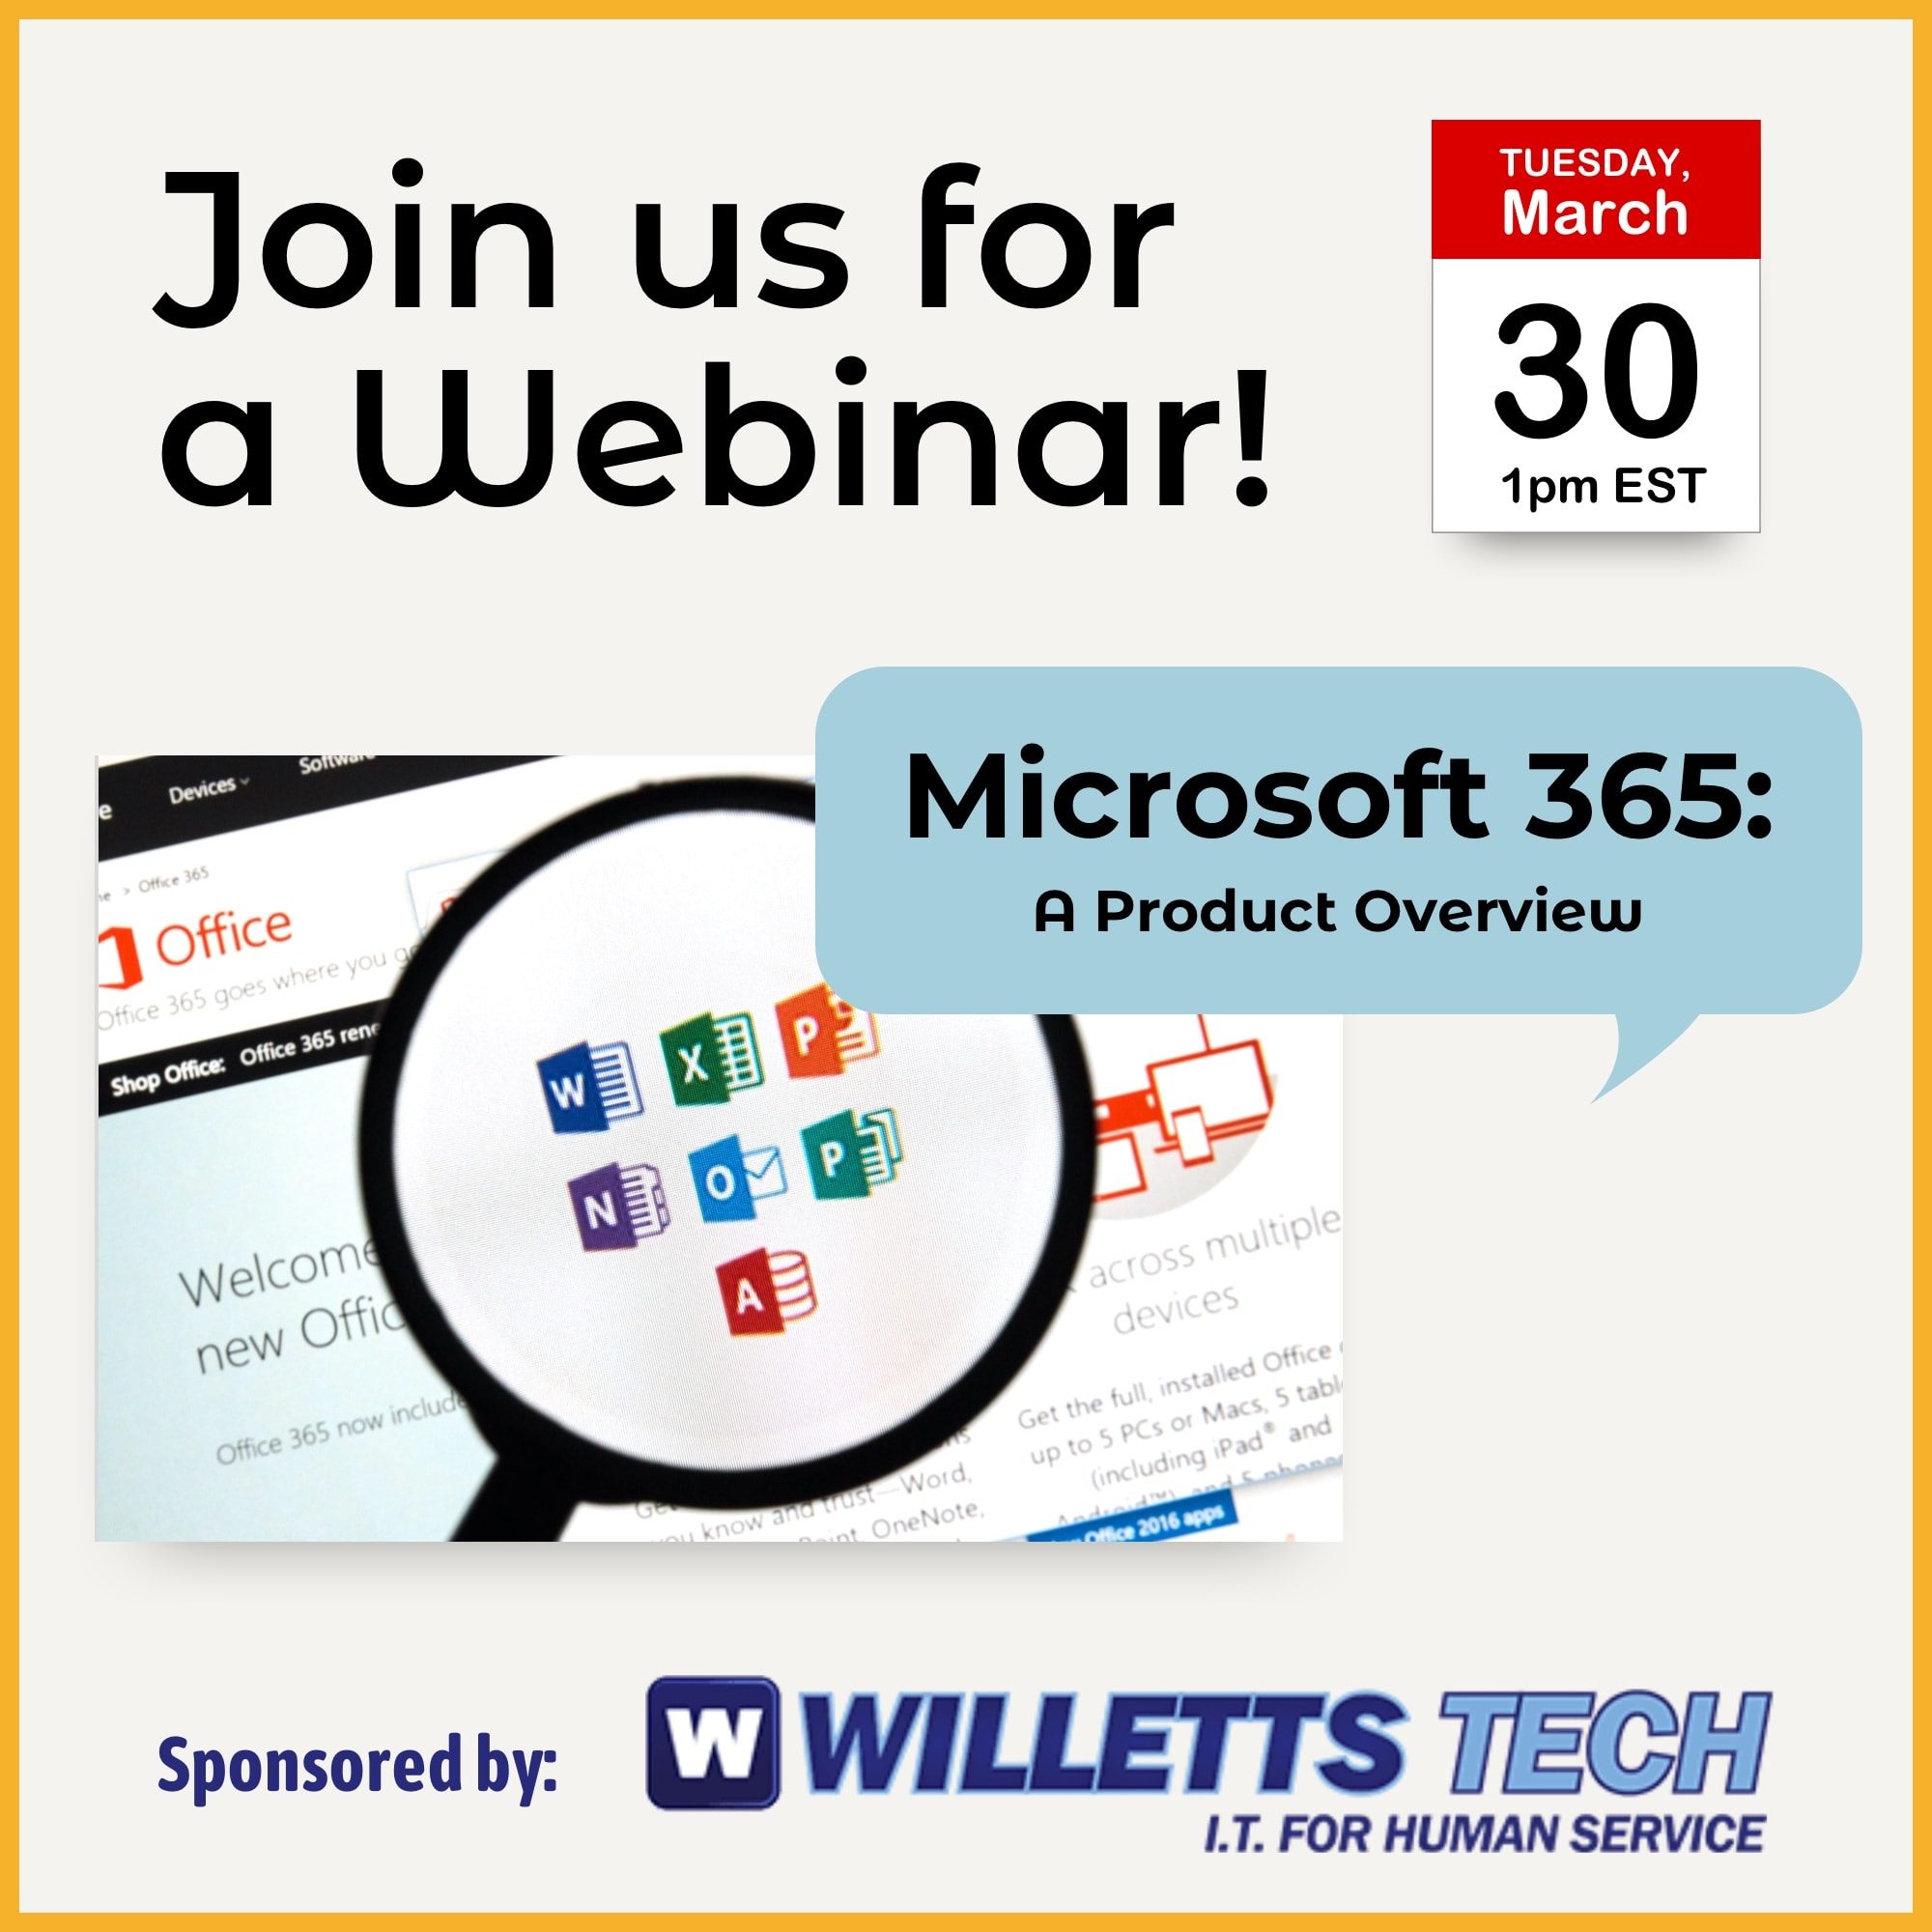 Join us for a Webinar on Tuesday, March 30th at 1pm EST: Microsoft 365: A Product Overview. Sponsored by Willetts Tech